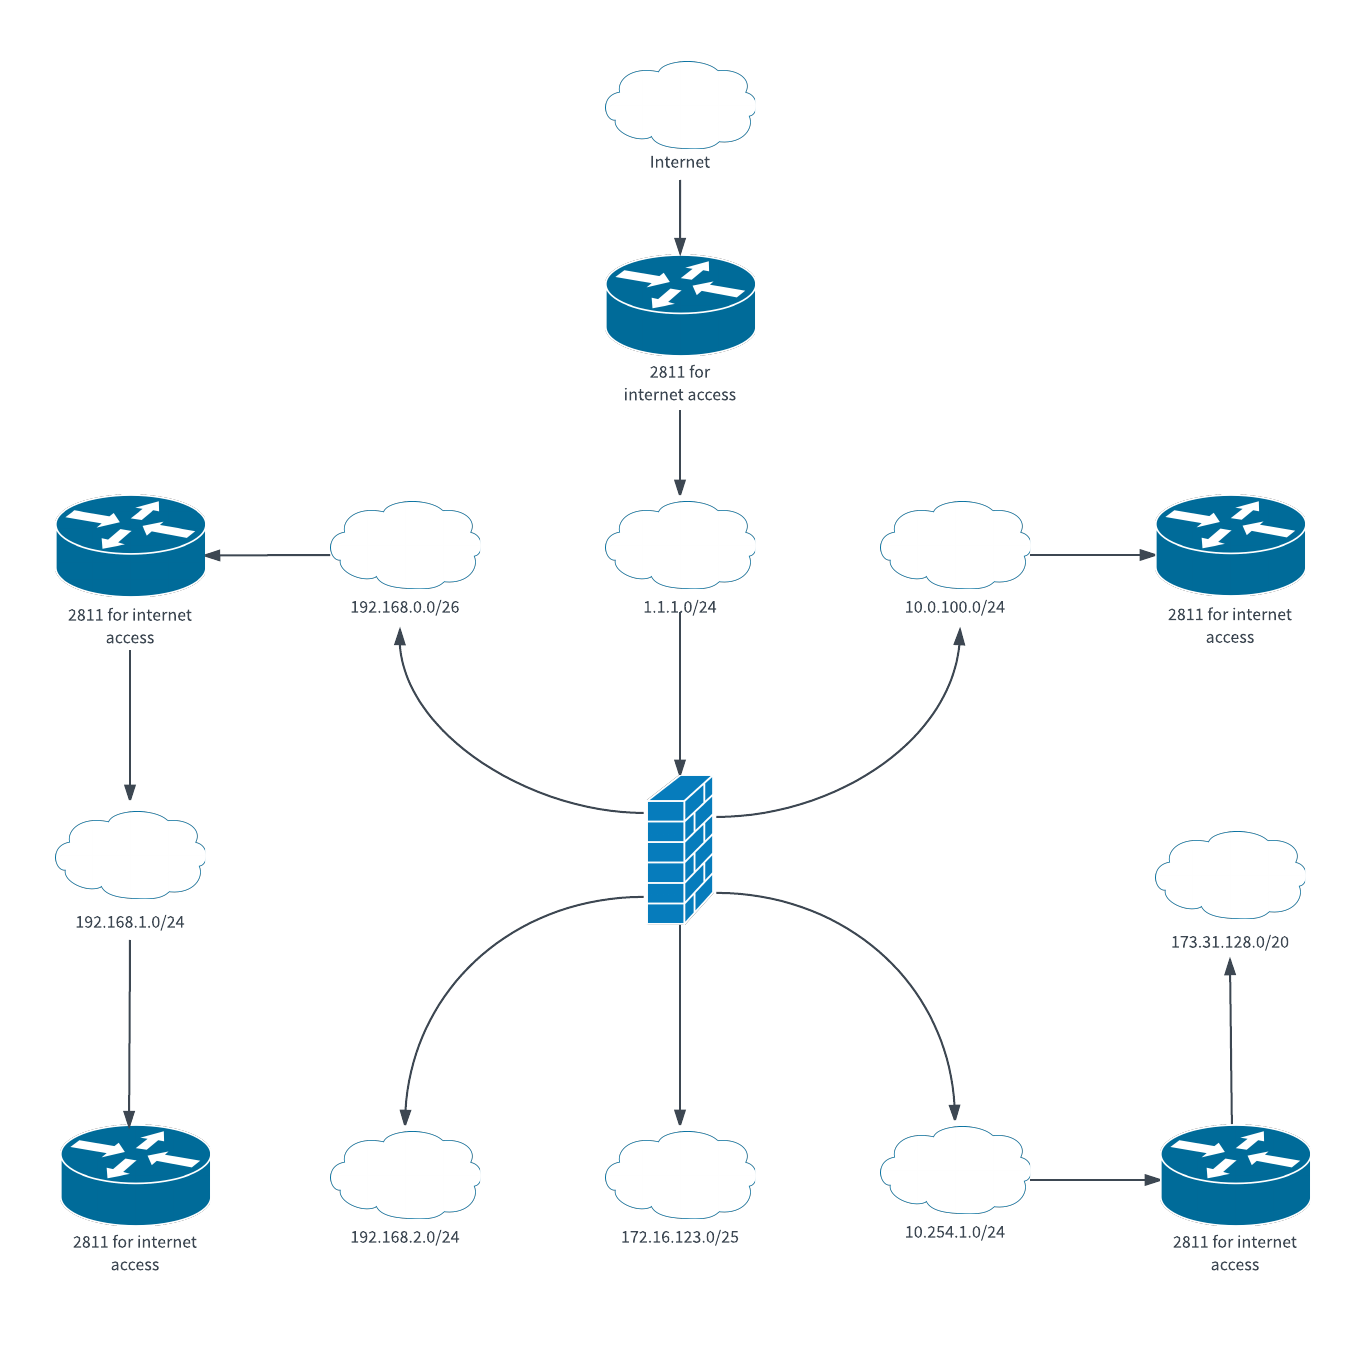 visio wan network diagram template.html